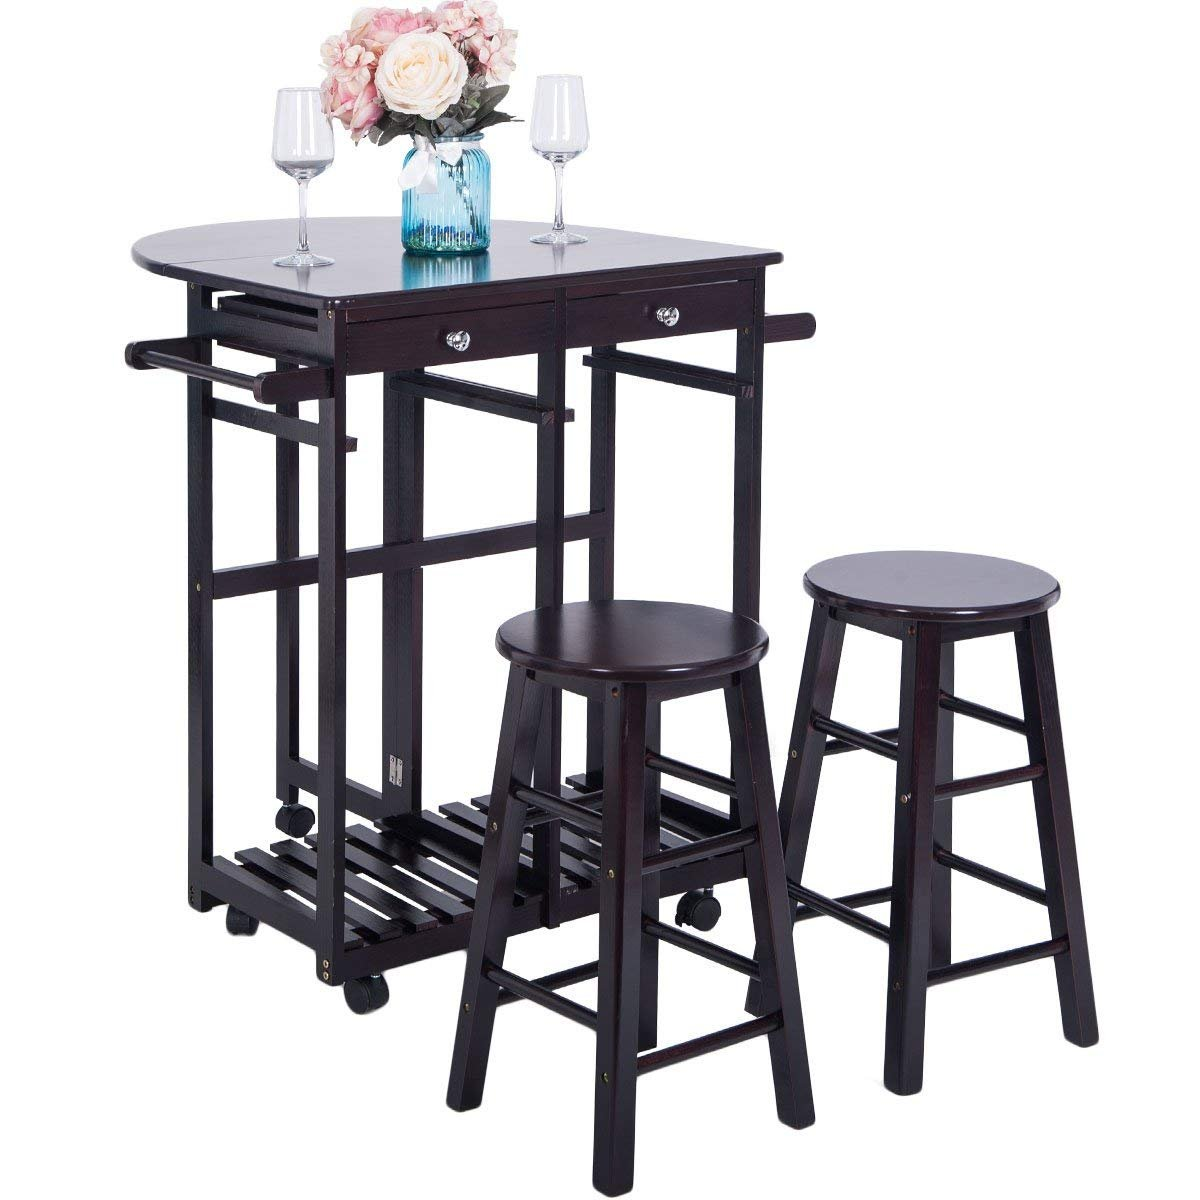 Breakfast Cart With 2 Stools,JULYFOX Drop Leaf Kitchen Island With Seating Chairs Wheels Storage Drawers Tower Rack Counter Height Tall Pub Bar Table Set 3 Piece Espresso For Small Spaces